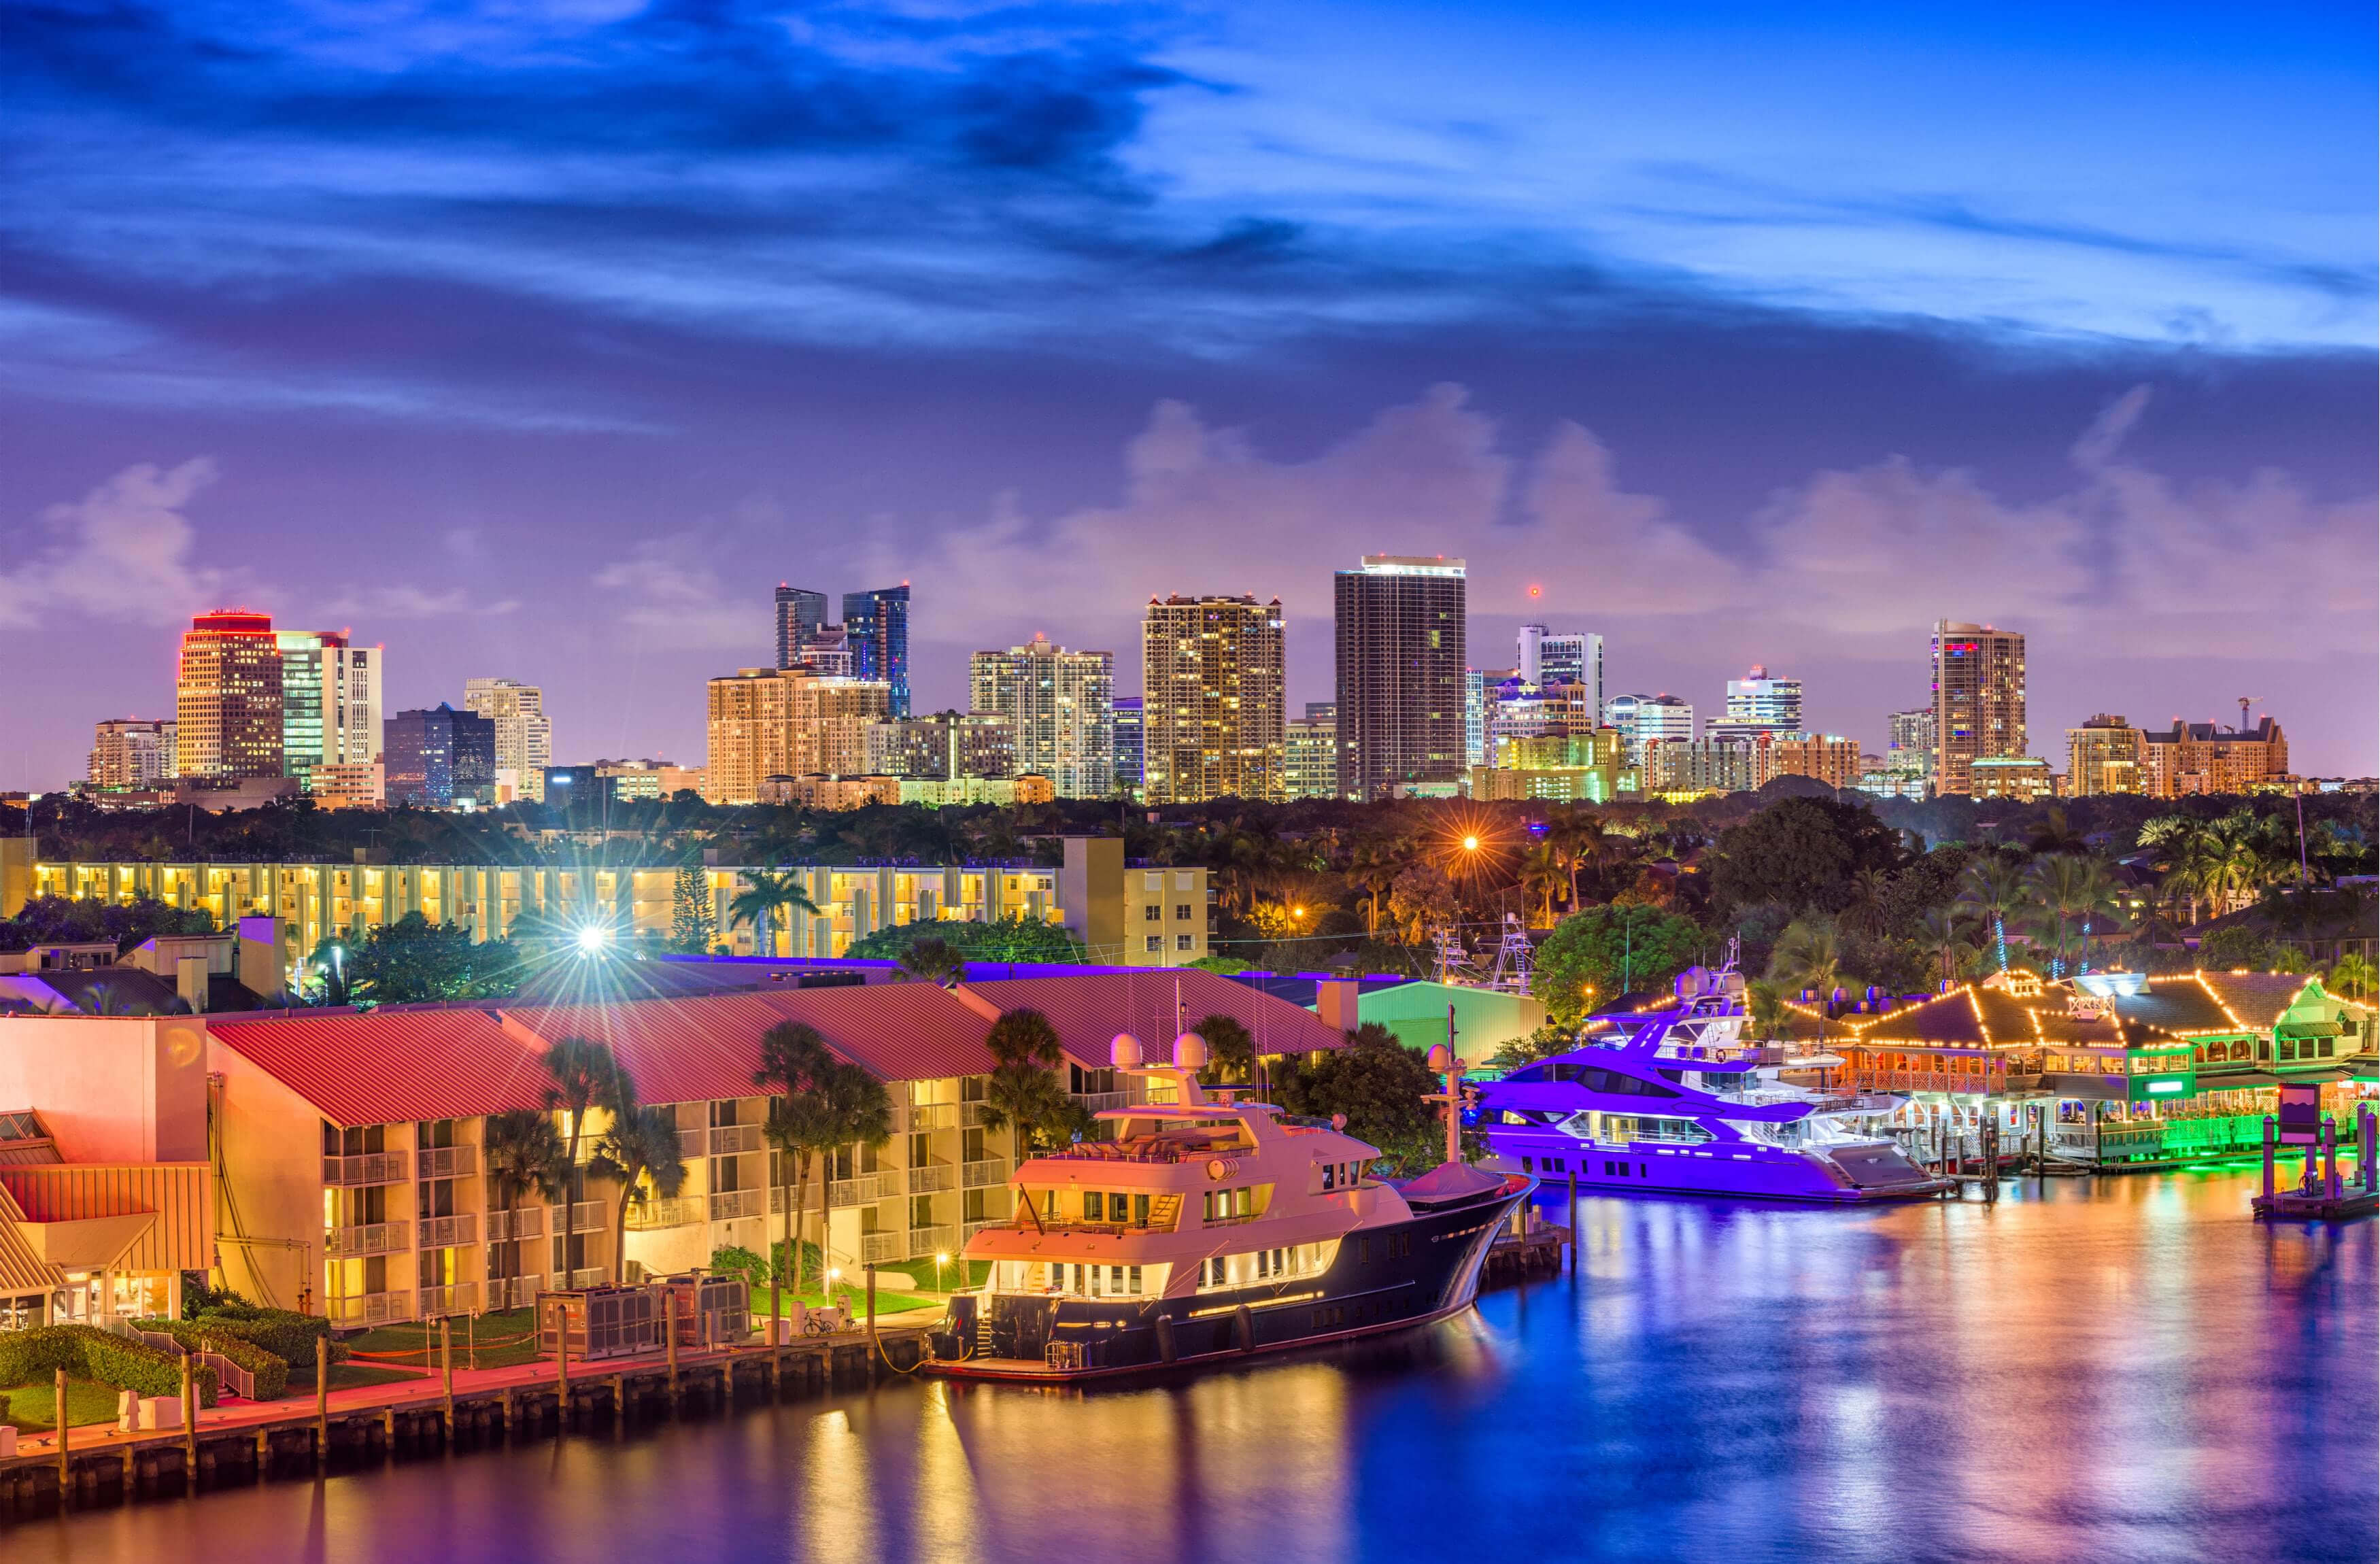 Save the Date LendConnect 2019 in Fort Lauderdale